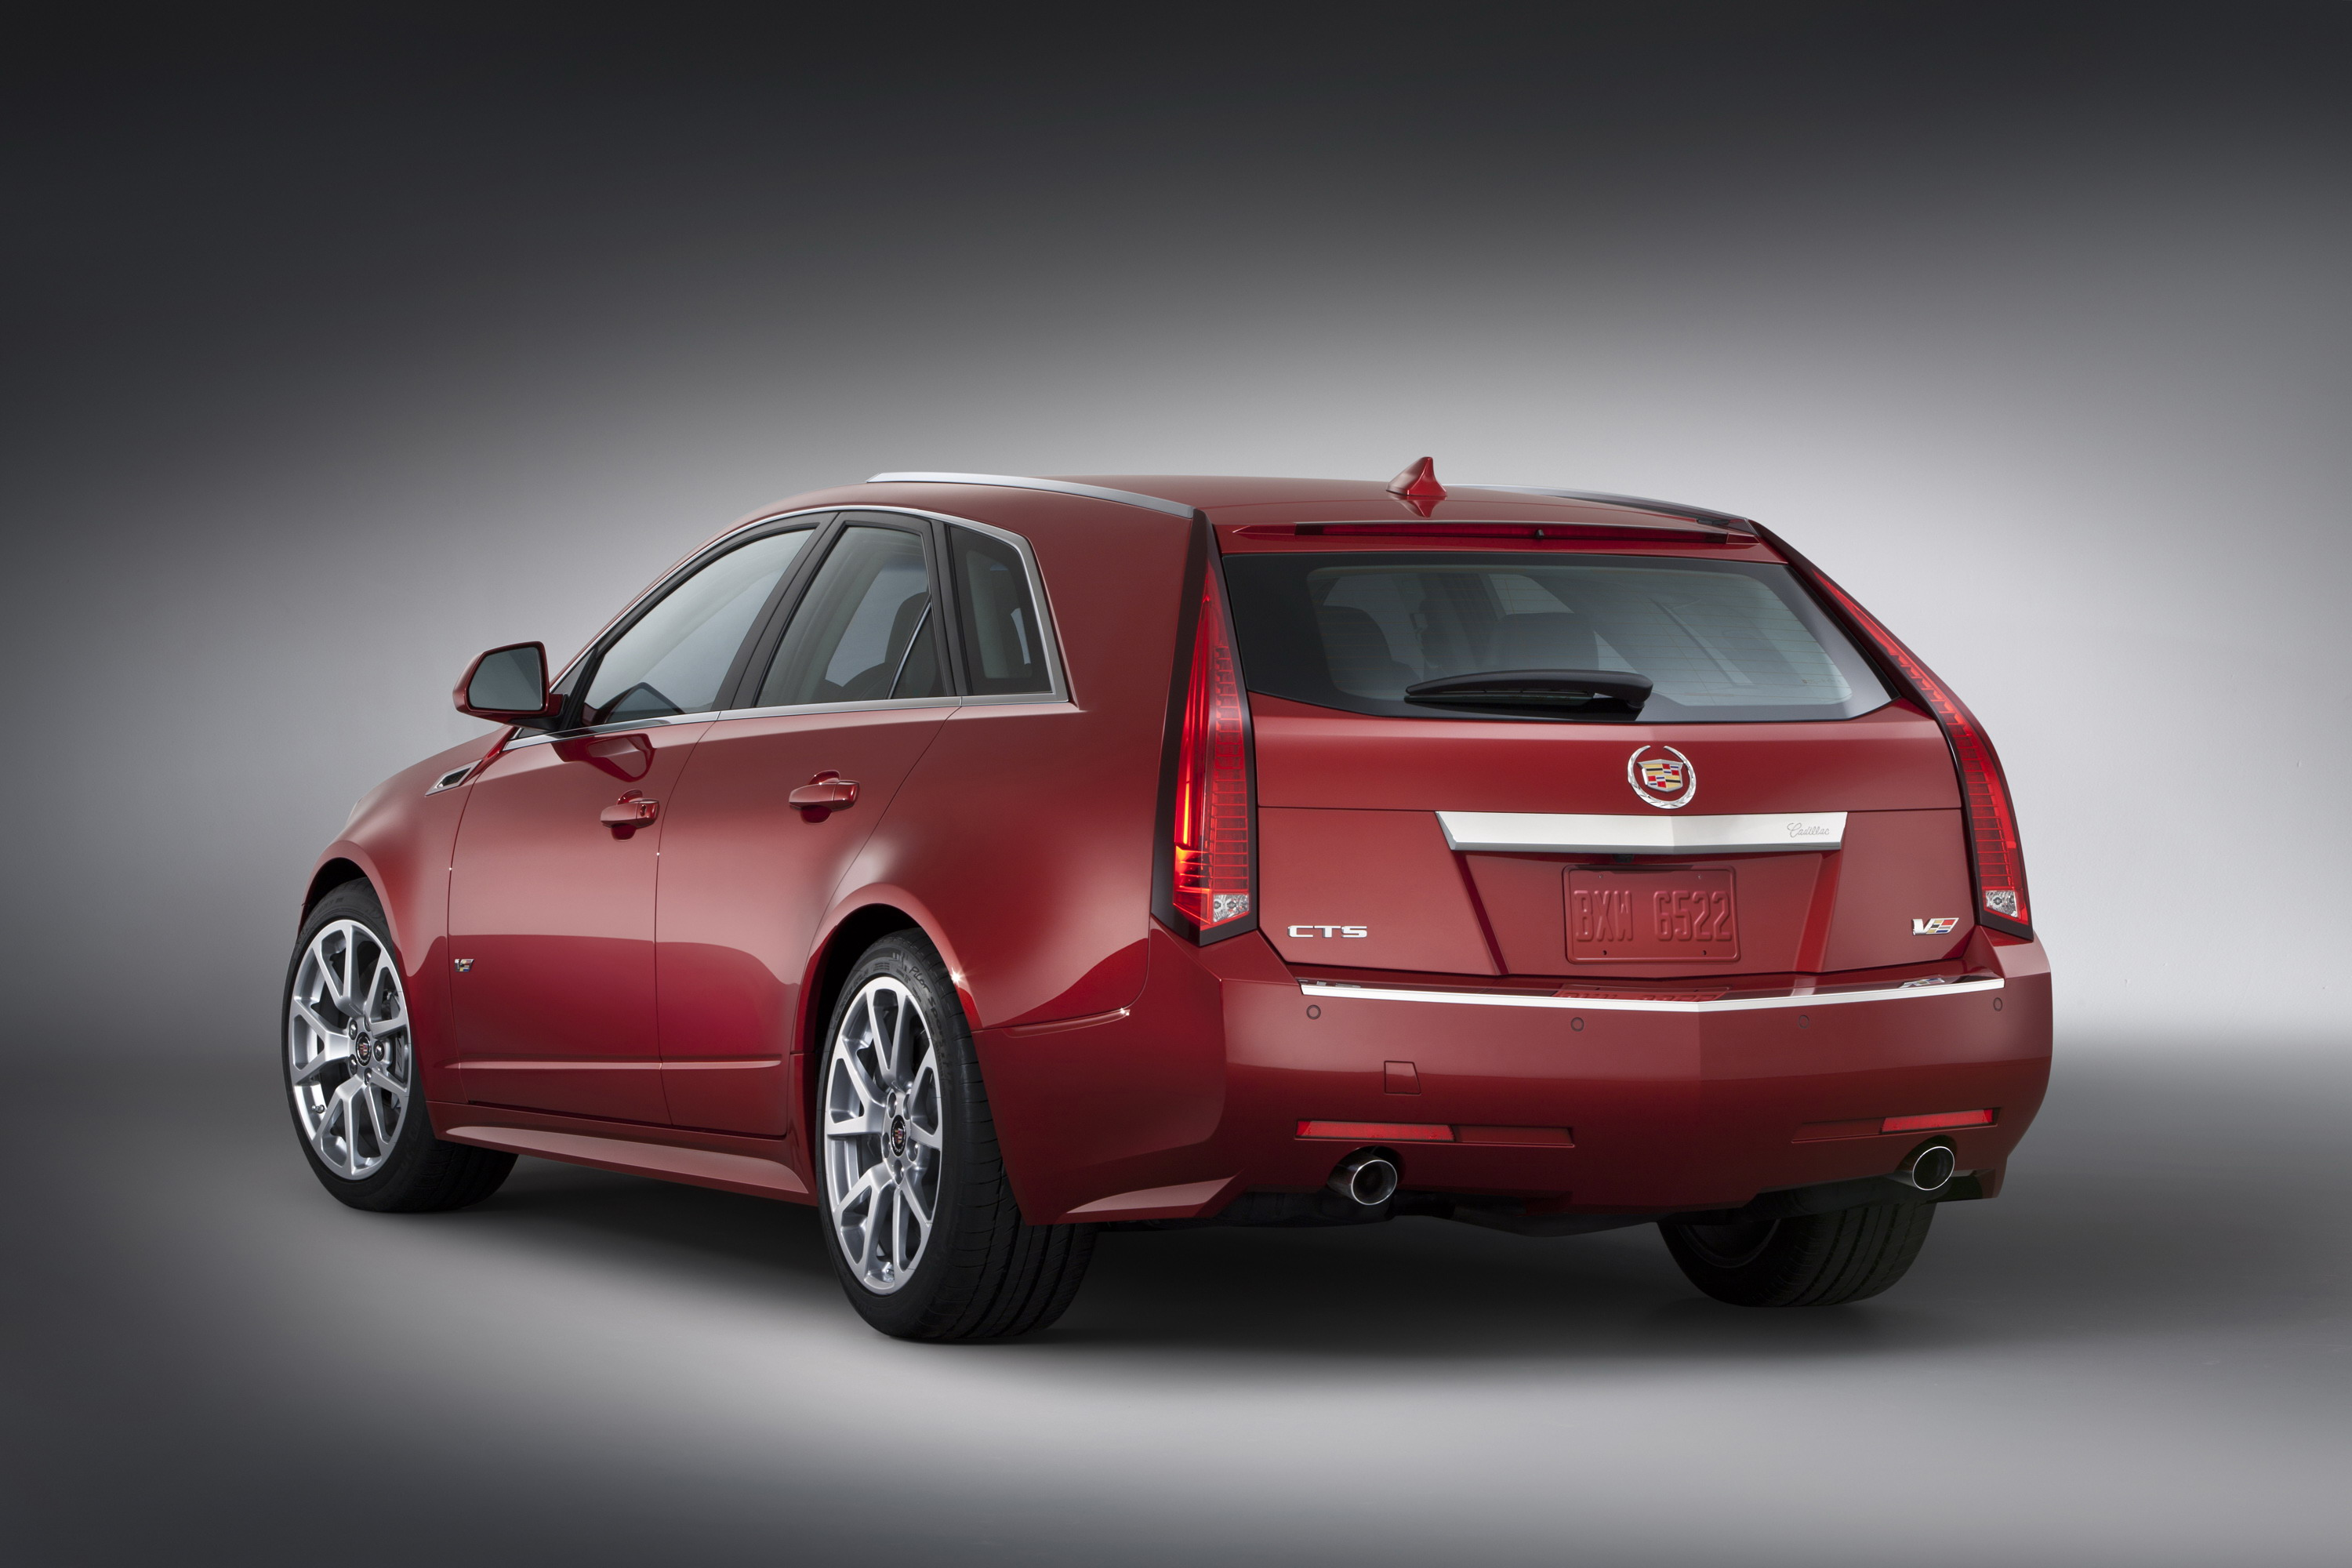 2014 cadillac cts v wagon gallery 545929 top speed. Black Bedroom Furniture Sets. Home Design Ideas